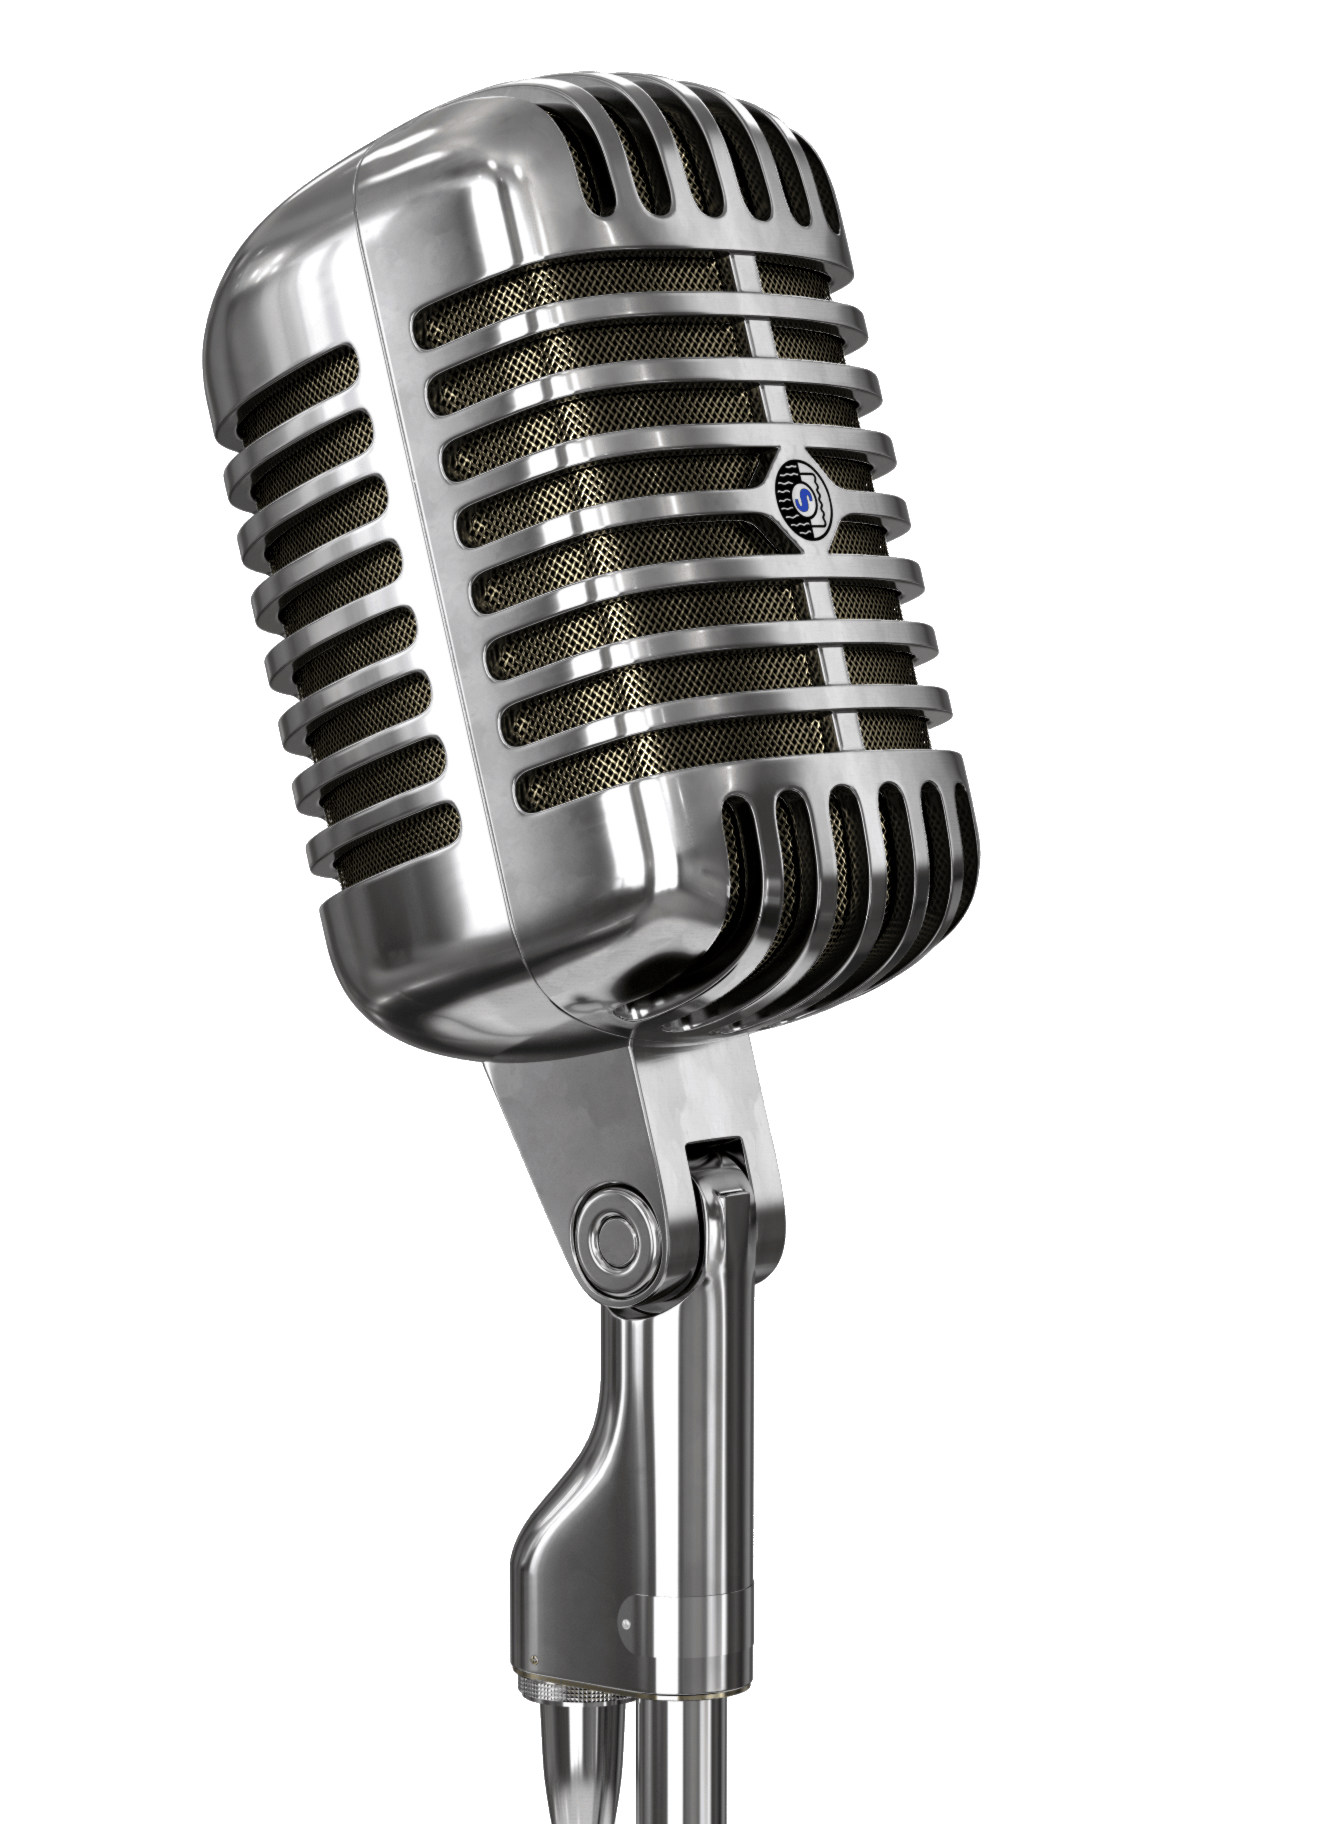 Vintage Microphone and Stand transparent PNG.